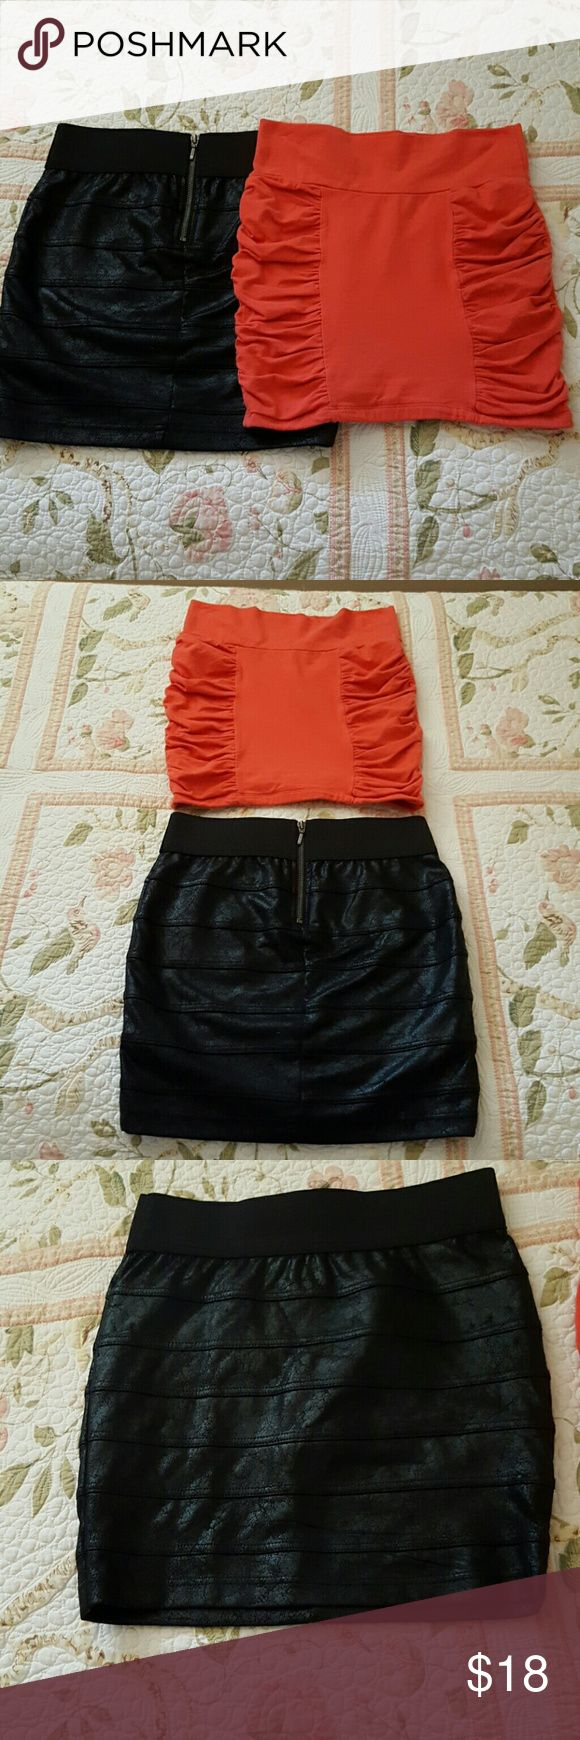 Fabulous Mini Skirts Bundle! Both Charlotte Russe size small fabulous form fitting and looking like brand new! Both great designs, black with front zipper and distressed leather look! Black has 28 inch elastic waist. 16 inch length. Orange is a stretch fit in it with a 27 inch waist. 14 inch length. Polyester spandex blend and cotton spandex blend. Awesome look and awesome price! Charlotte Russe  Skirts Mini